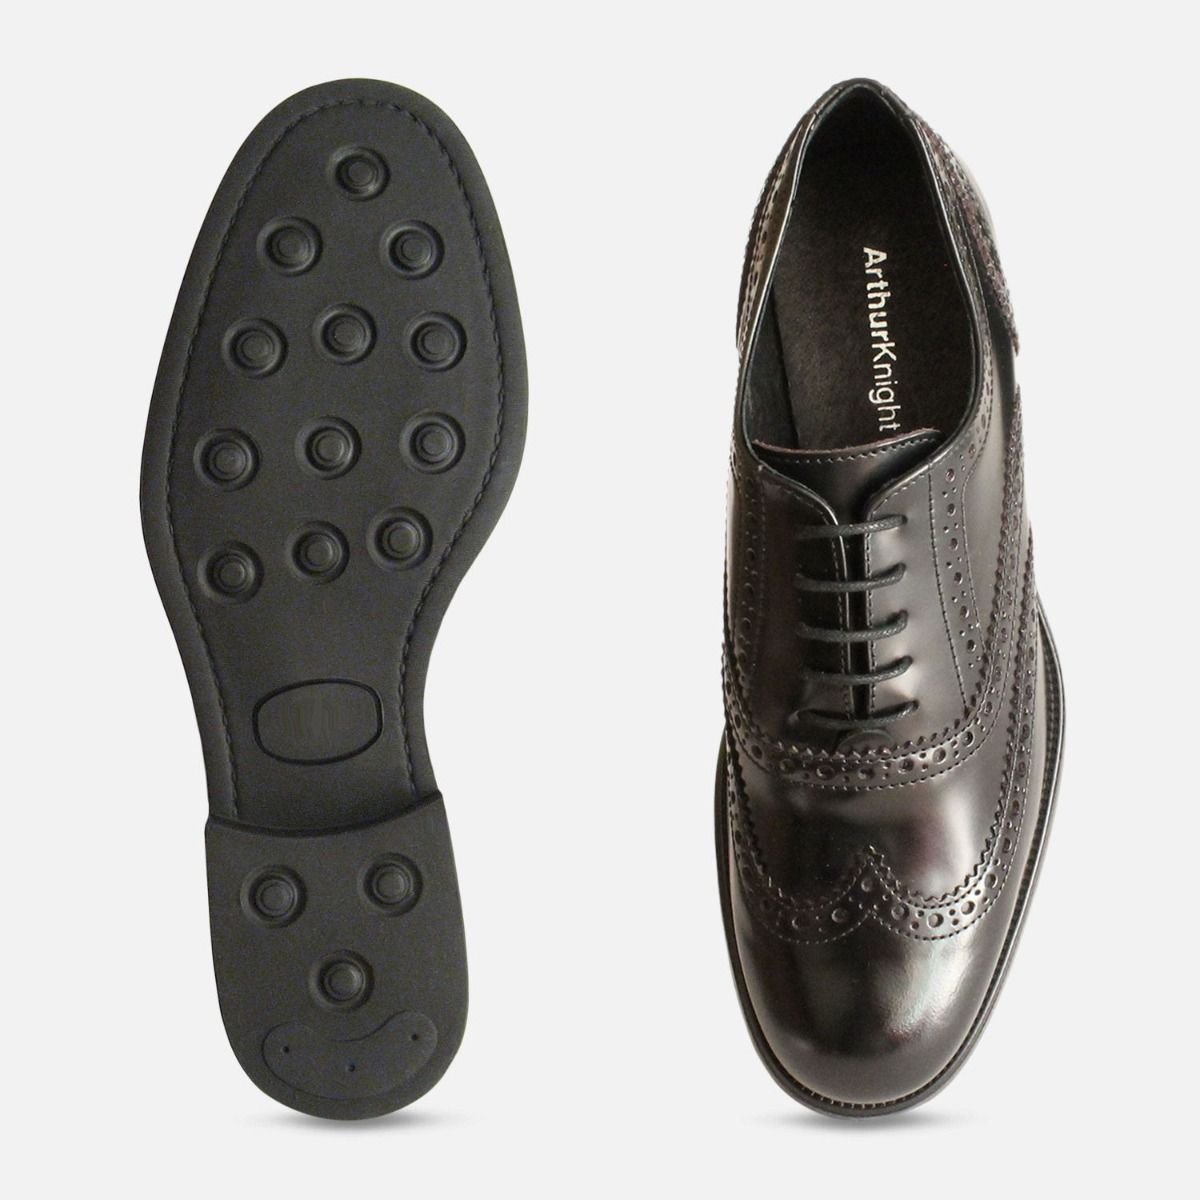 Black Oxford Rubber Sole Brogues Made